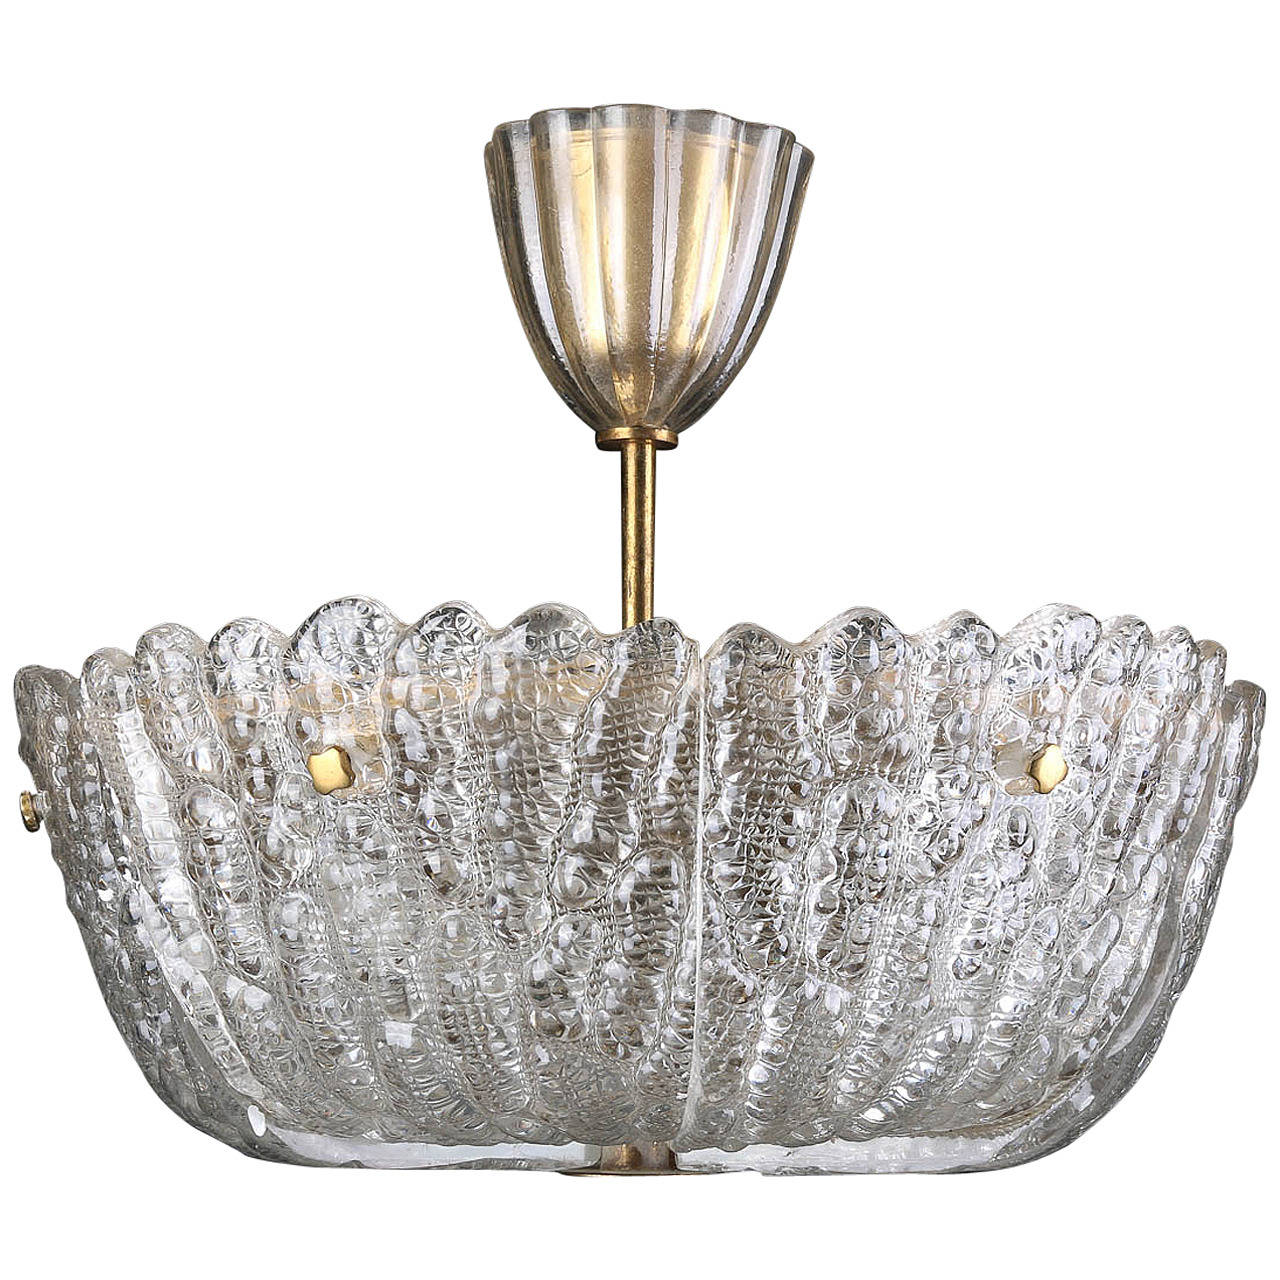 Orrefors Crystal Chandelier by Carl Fagerlund